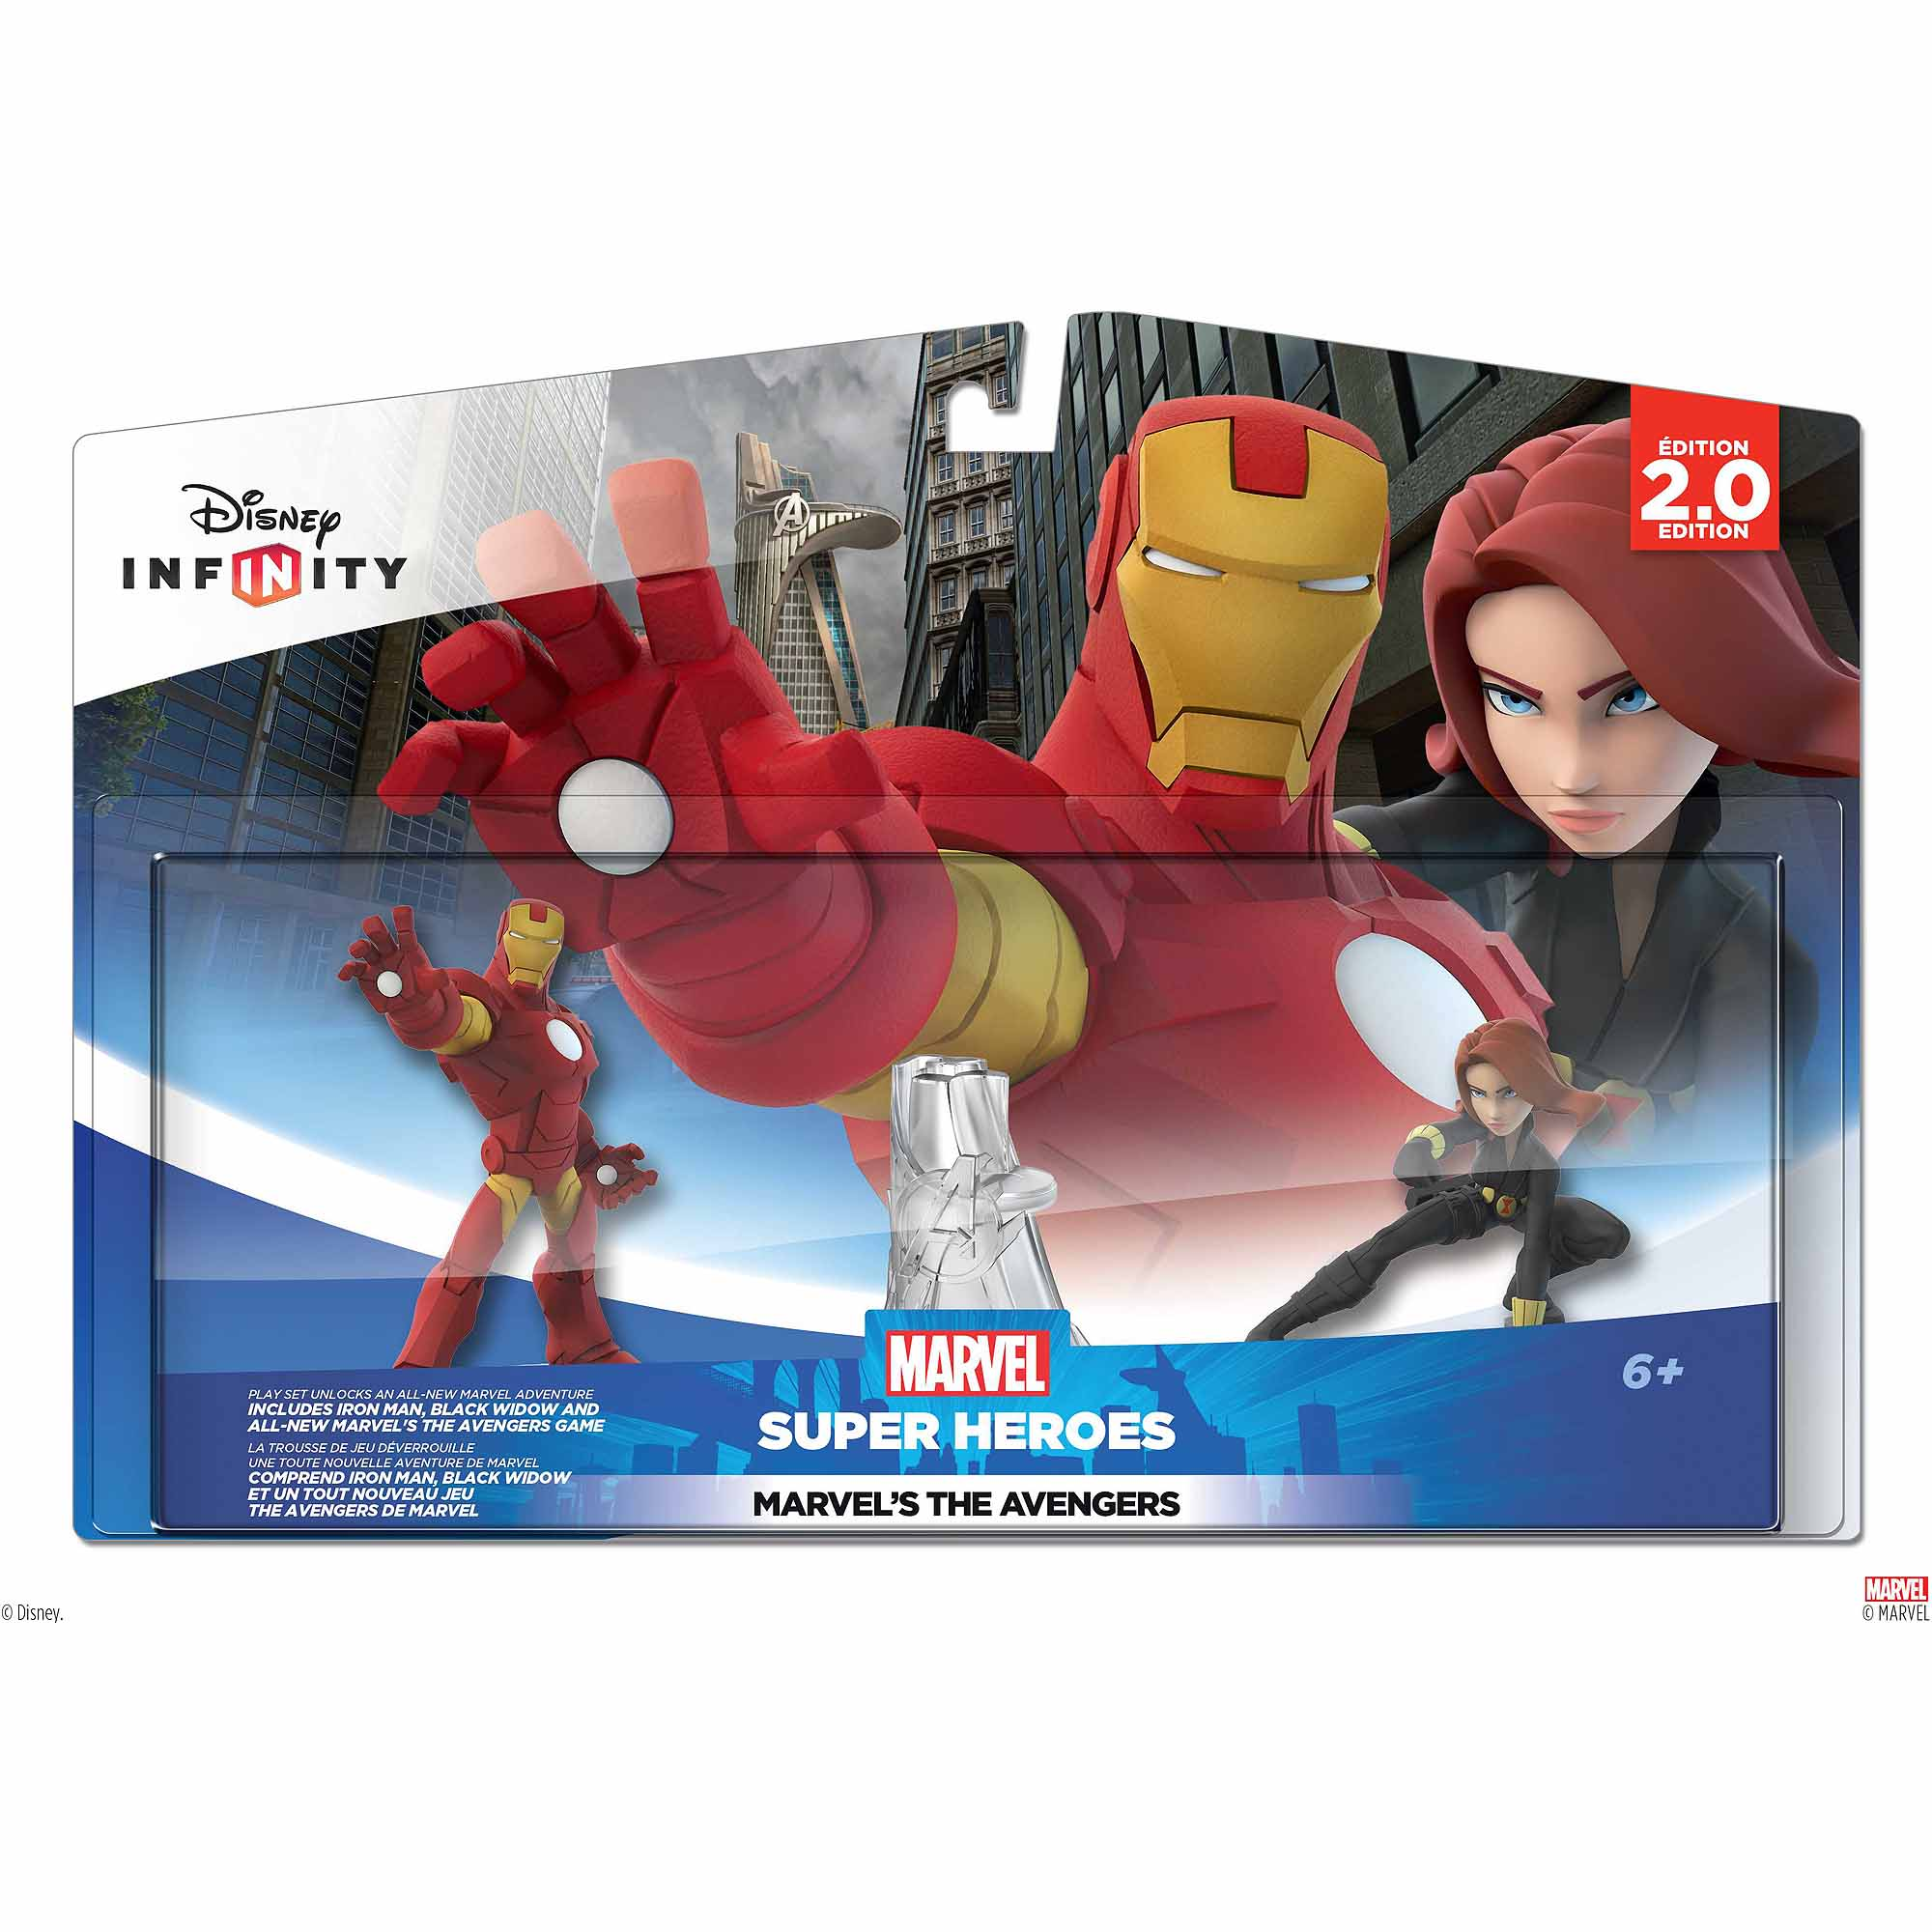 Disney Infinity: Marvel Super Heroes (2.0 Edition) - Marvel's The Avengers Play Set (Universal)